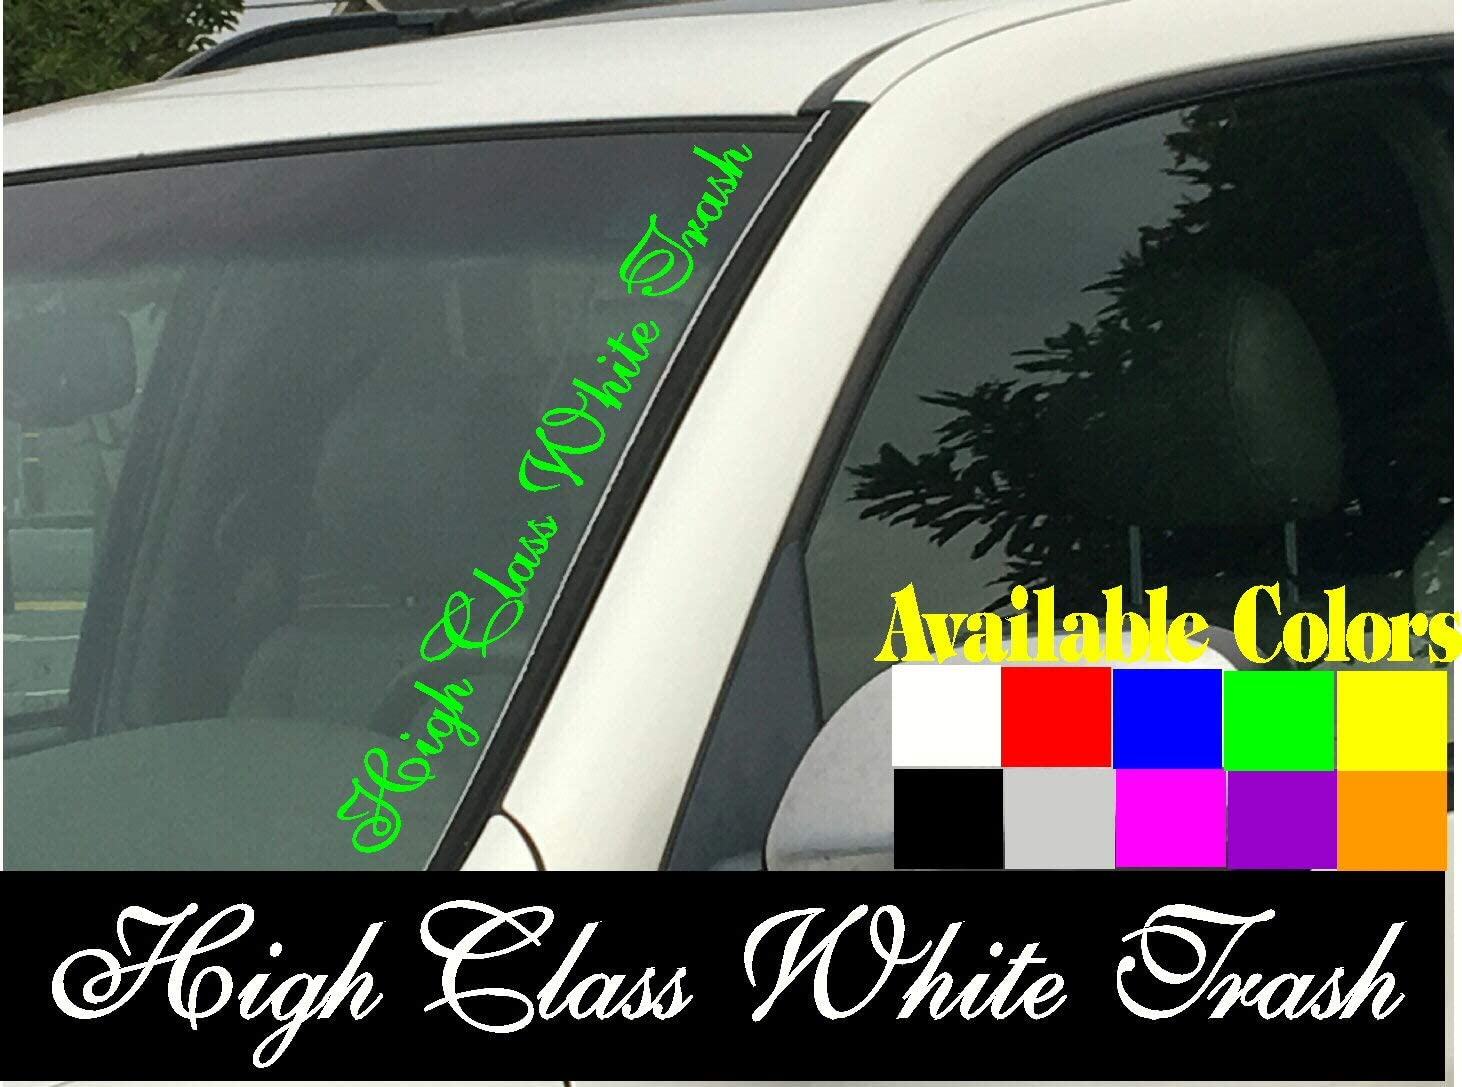 Garbage Sign Sticker Cut-Out Vinyl Decal for car vehicle window door or bumper